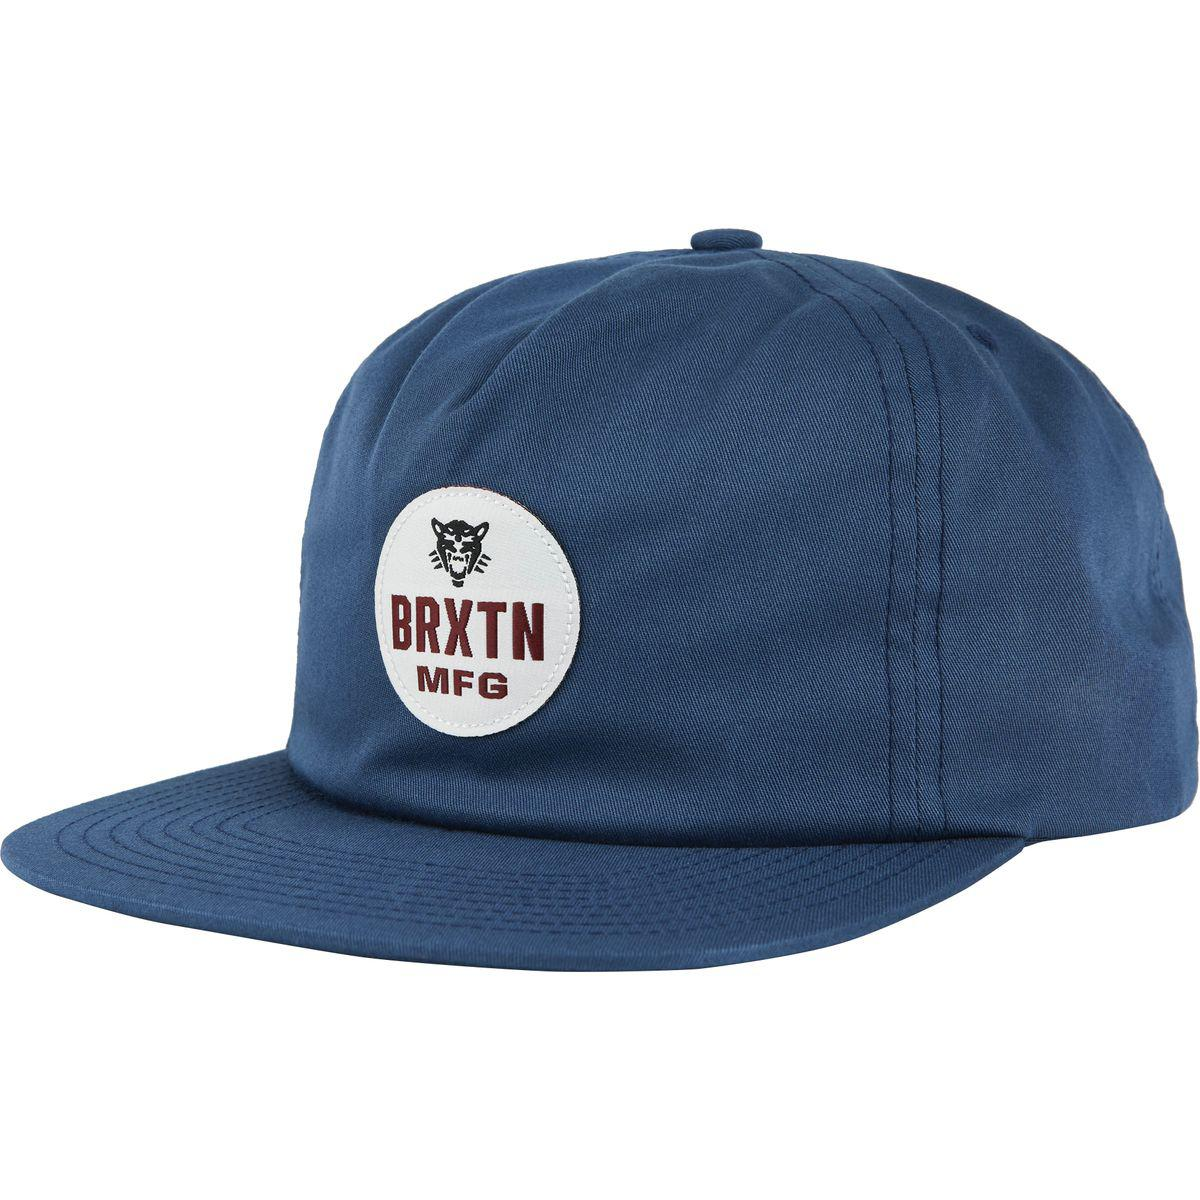 Lyst - Brixton Panther Hp Snapback Hat in Blue for Men a8ed99fe5649